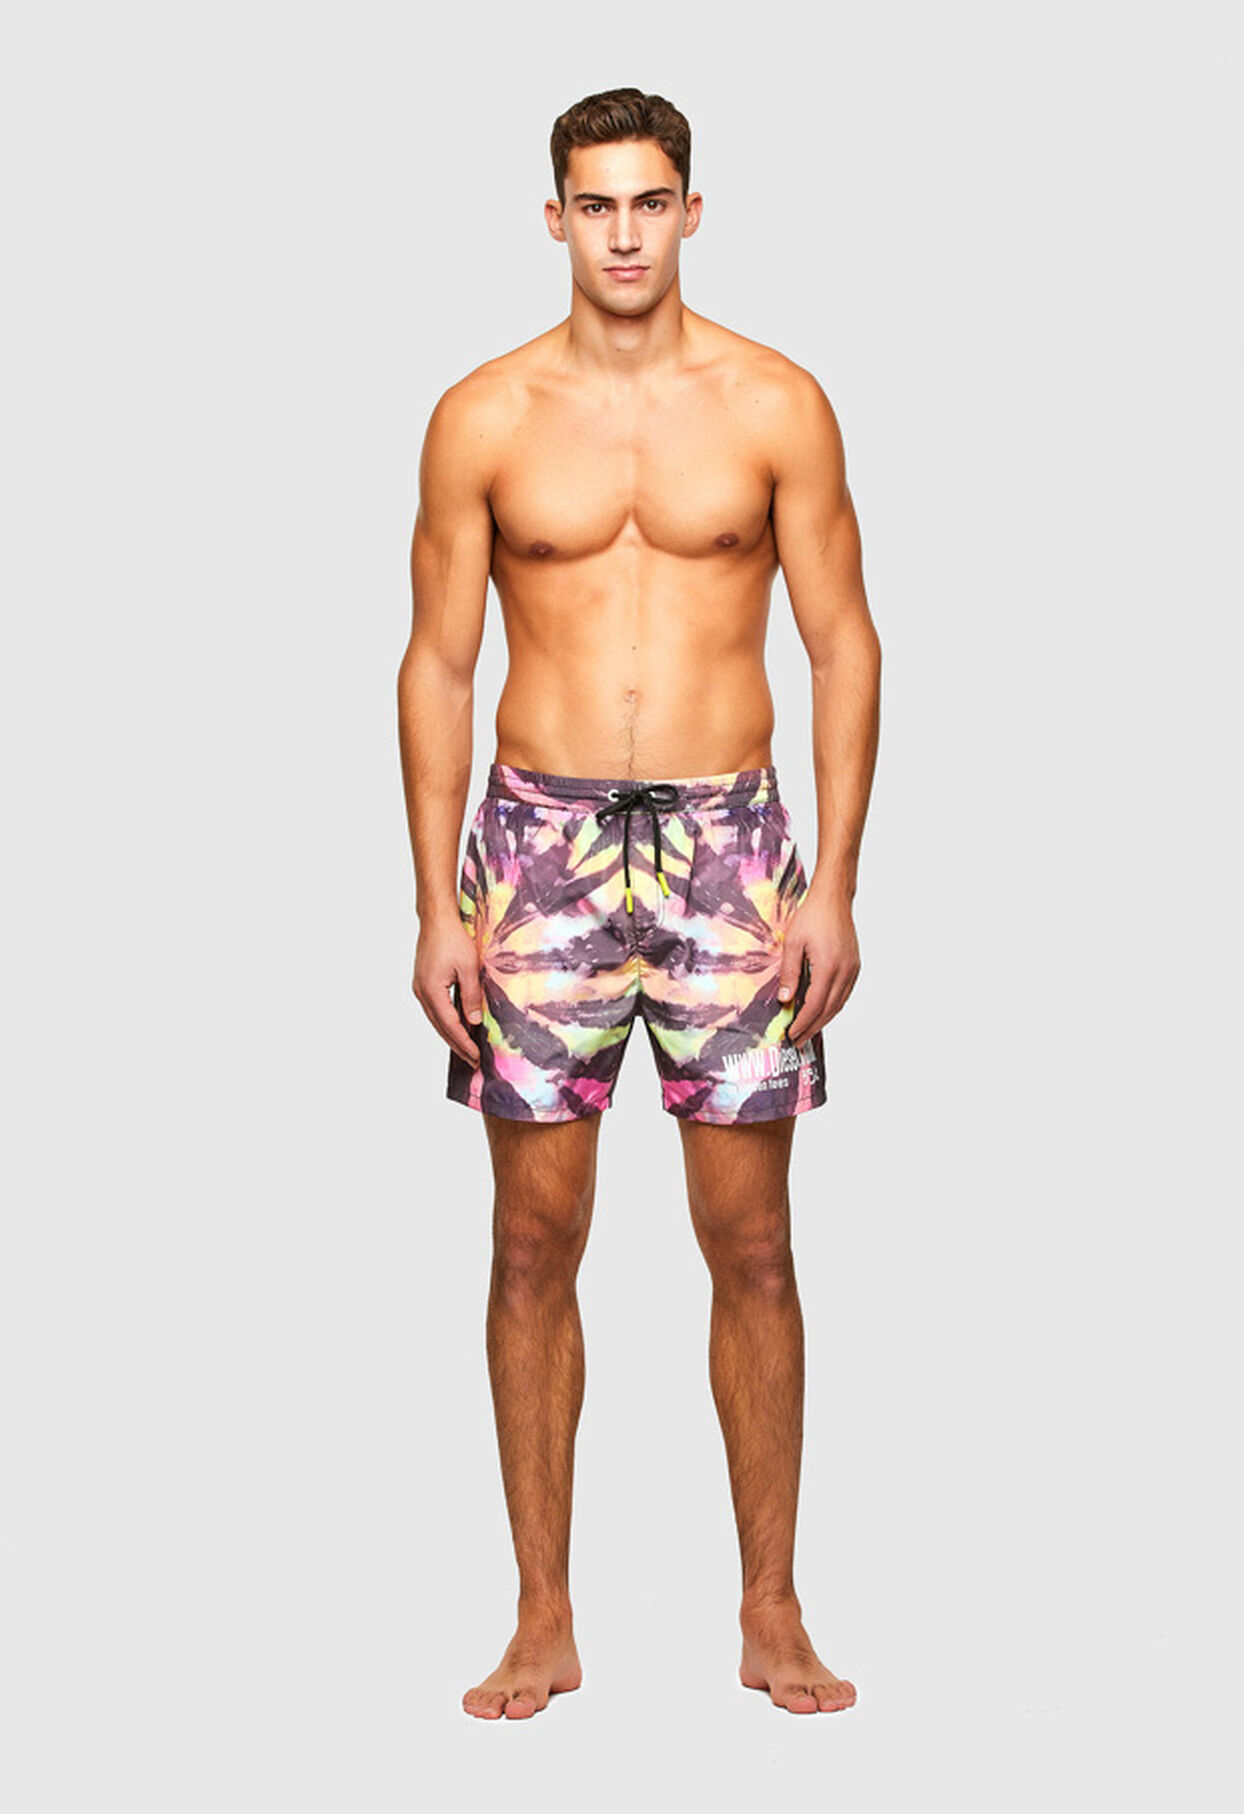 https://es.diesel.com/dw/image/v2/BBLG_PRD/on/demandware.static/-/Library-Sites-DieselMFSharedLibrary/default/dw34758e8d/CATEGORYOV/2X2_BEACHWEAR_B,BX-WAVE-2017_00SV9U_0JBAY_E0213_F.jpg?sw=1244&sh=1814